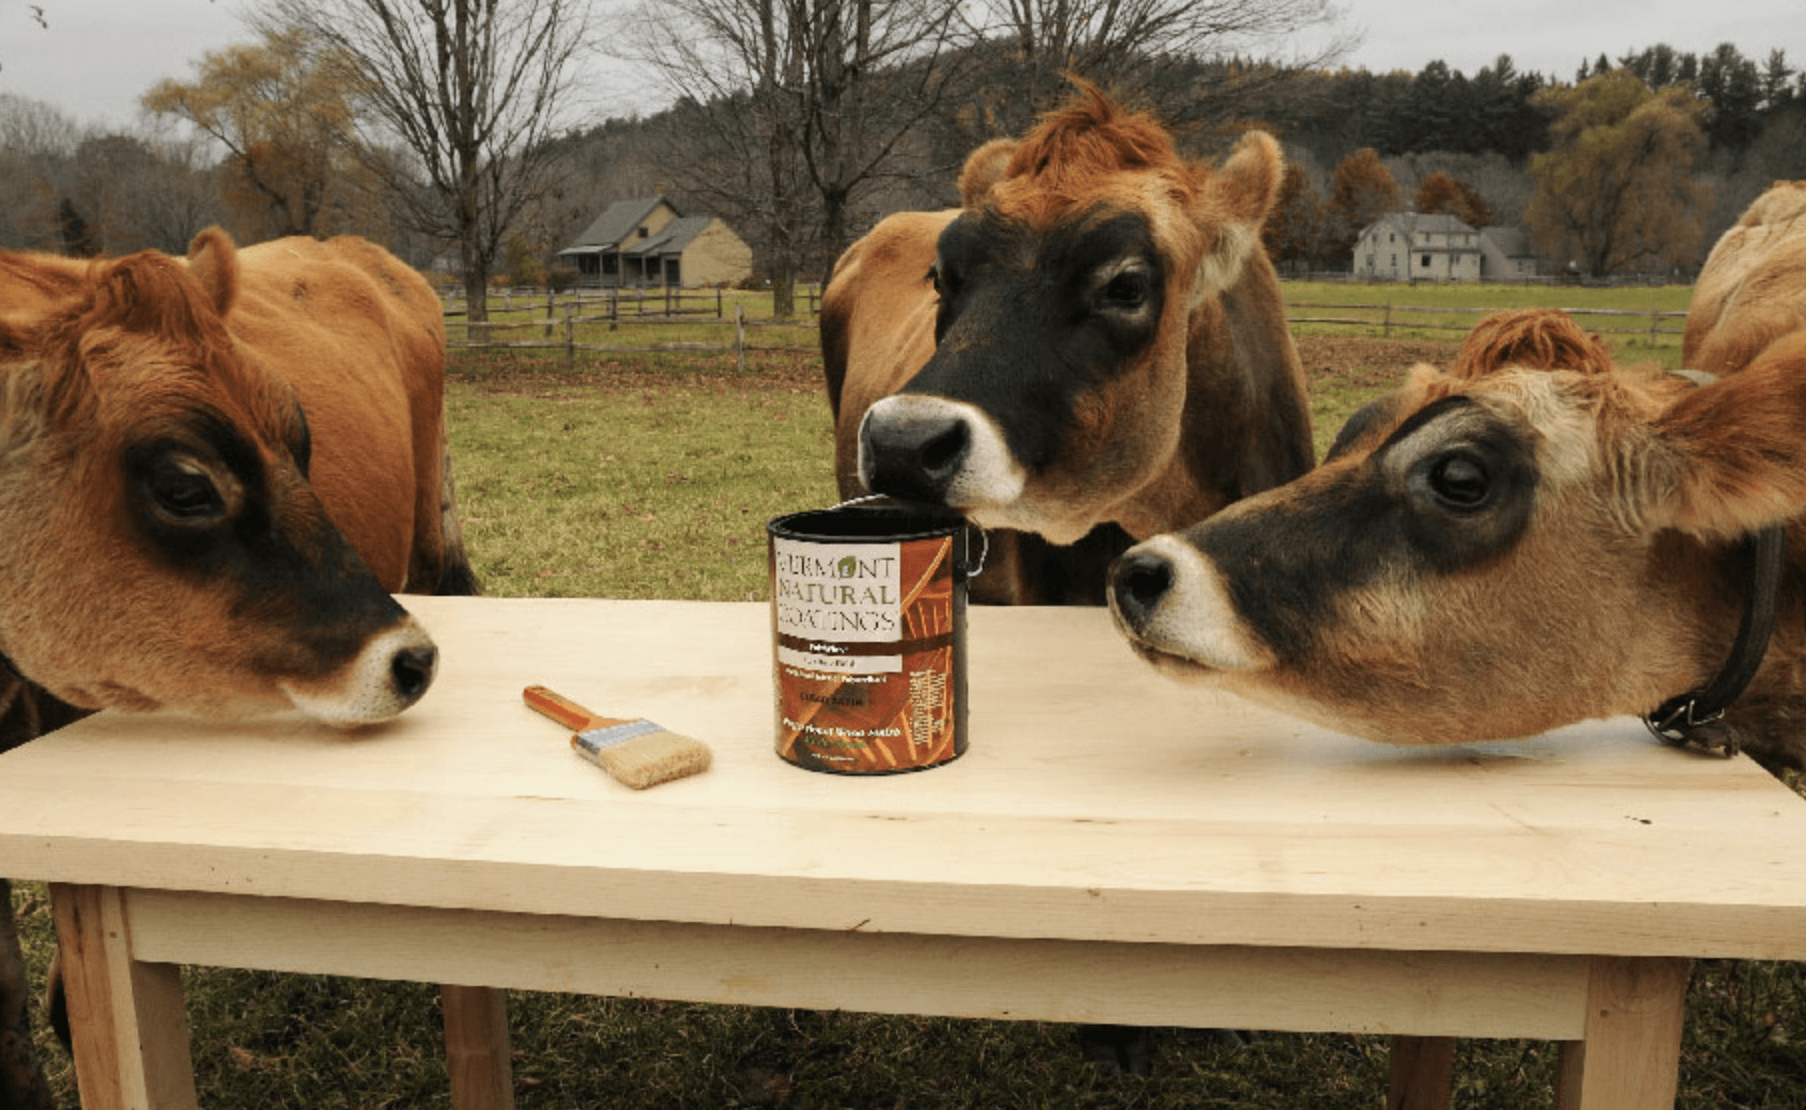 cows around a picnic eyeing a can of Vermont Natural Coatings and a paint brush